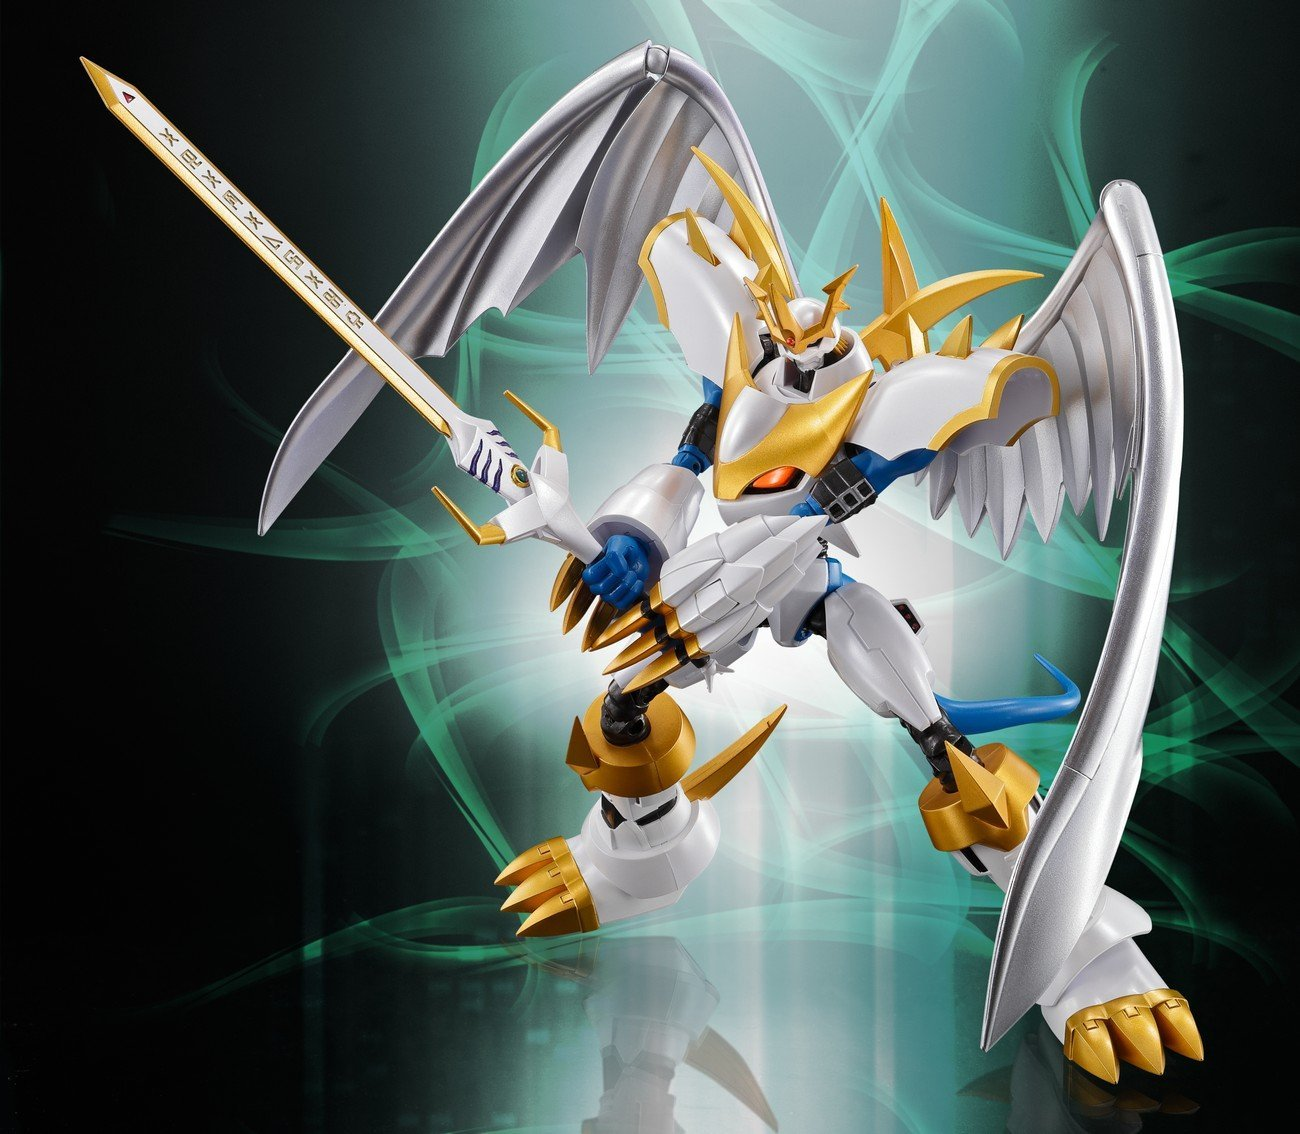 S.H. Figuarts Imperialdramon Paladin Mode Digimon